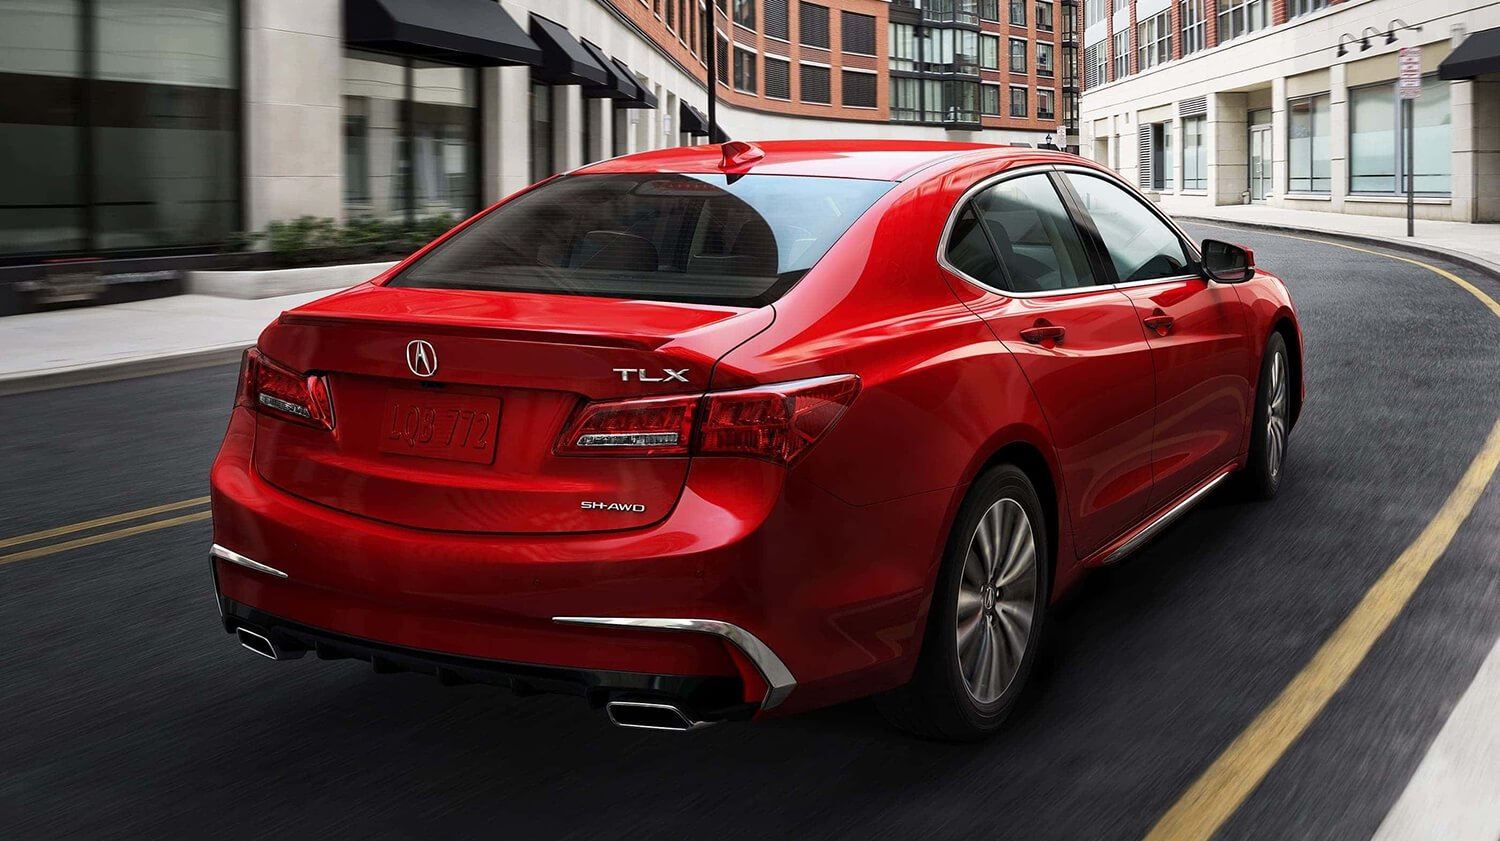 2018 Acura Tlx Georgia Acura Dealers Luxury Sedans In Ga